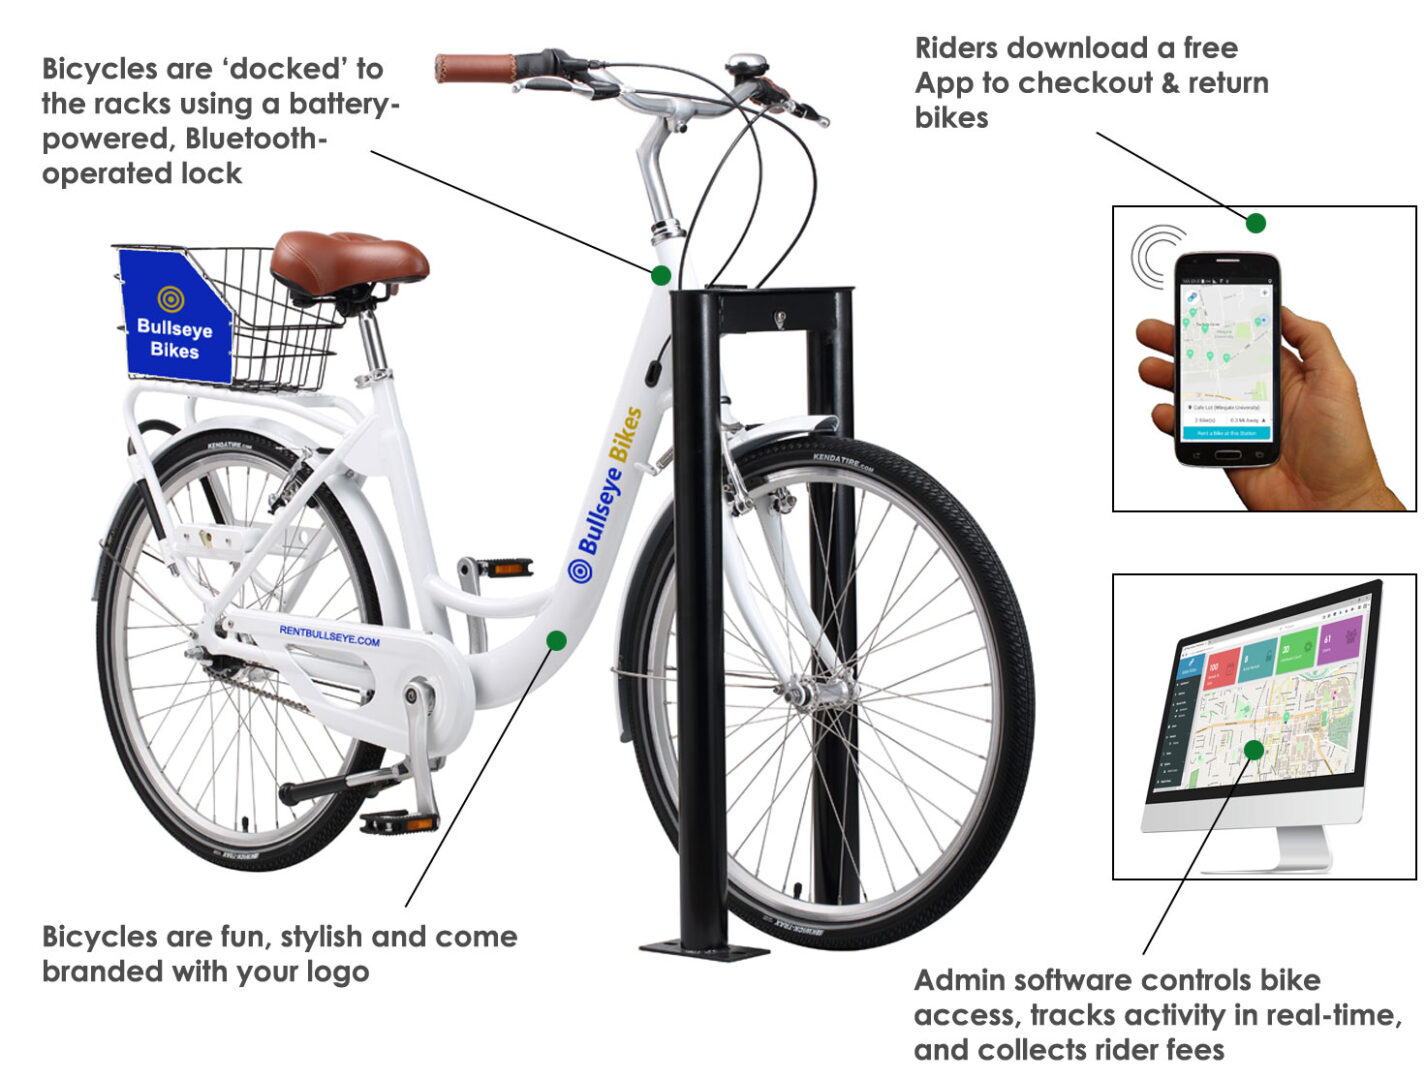 7-Speed On Bike Share system includes custom branded bicycles with smartlocks, docking racks, App and Admin software